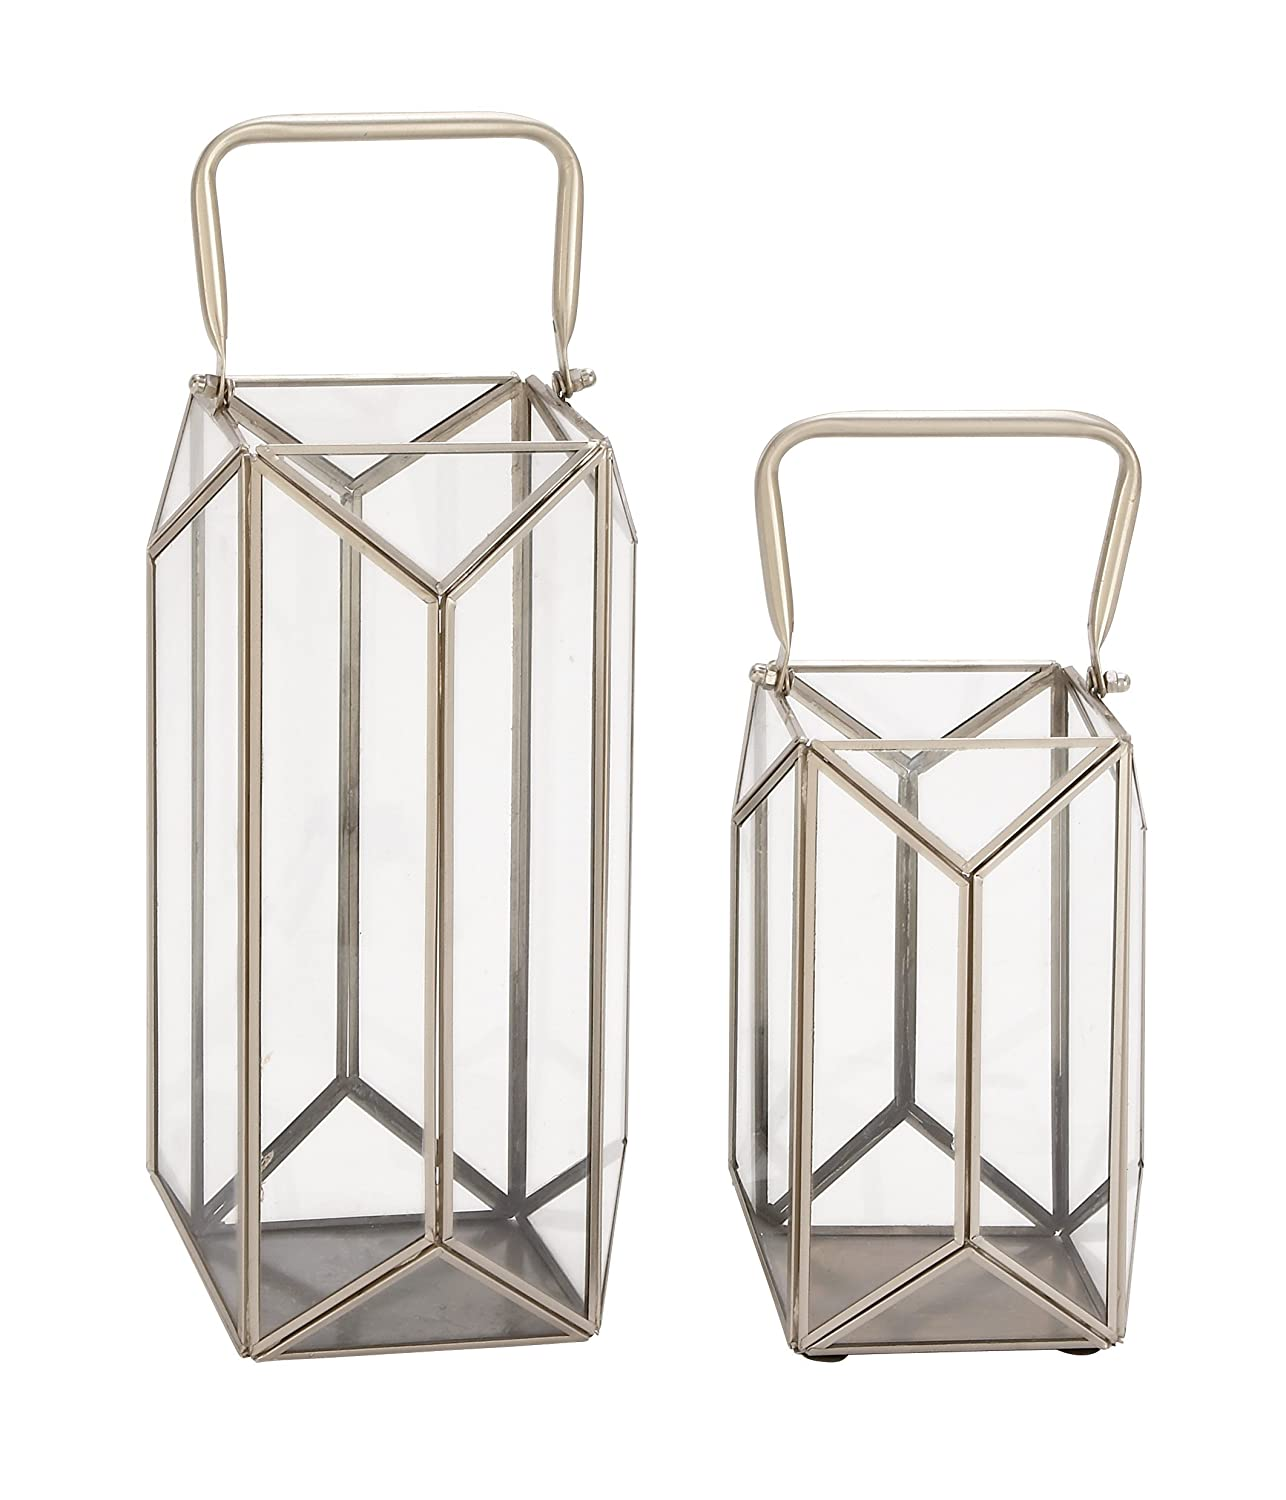 12 x 16 Silver//Clear Deco 79 54244 Trapezoidal Iron and Glass Lanterns Set of 2